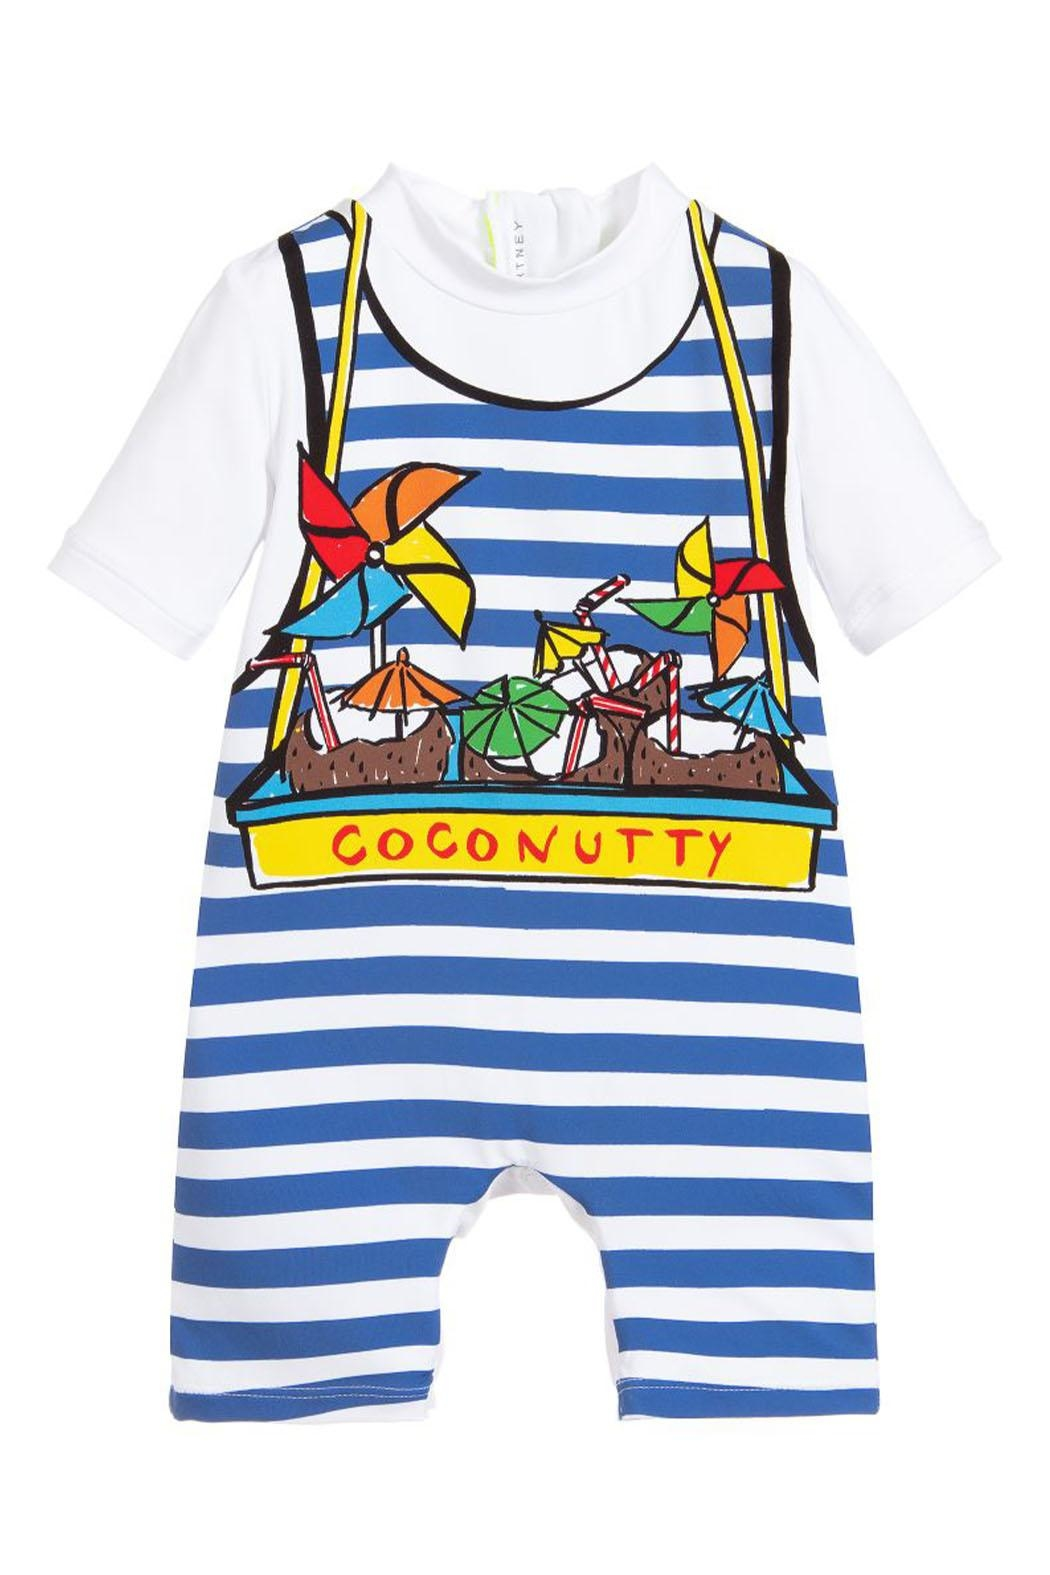 Stella McCartney Kids Boys 'Coconutty' Swimsuit - Front Cropped Image